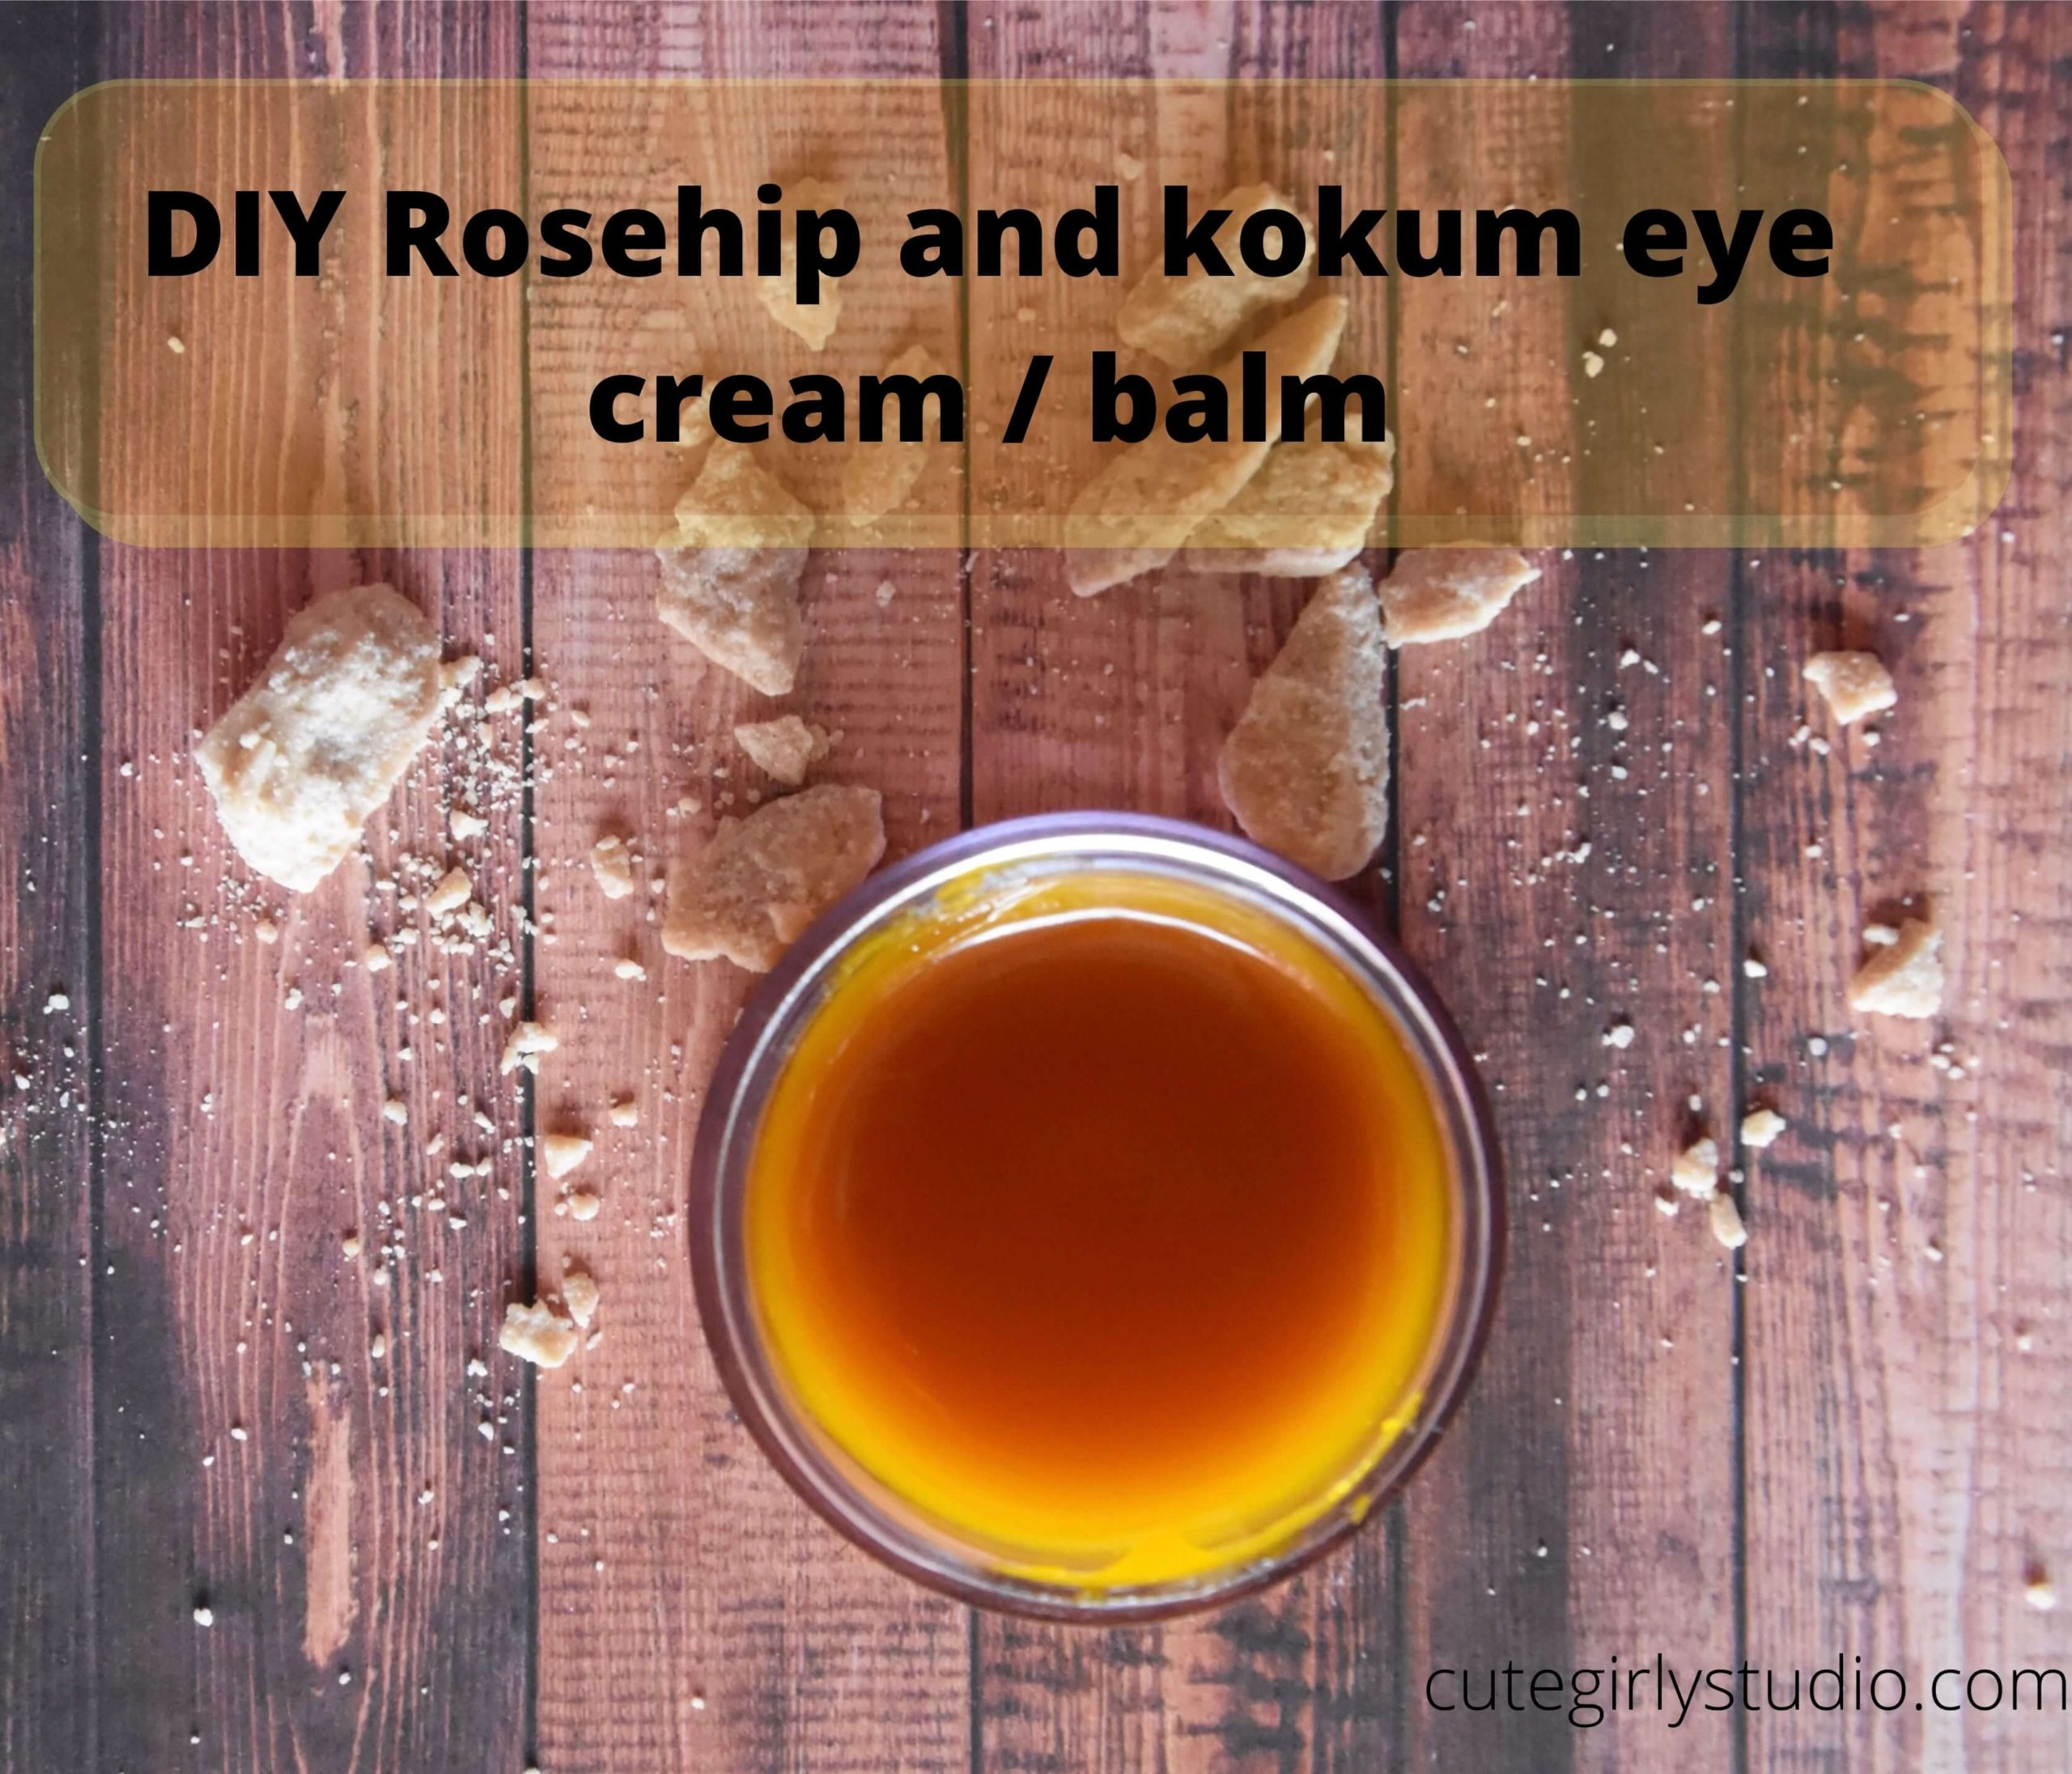 DIY Rosehip and kokum eye cream _ balm 1